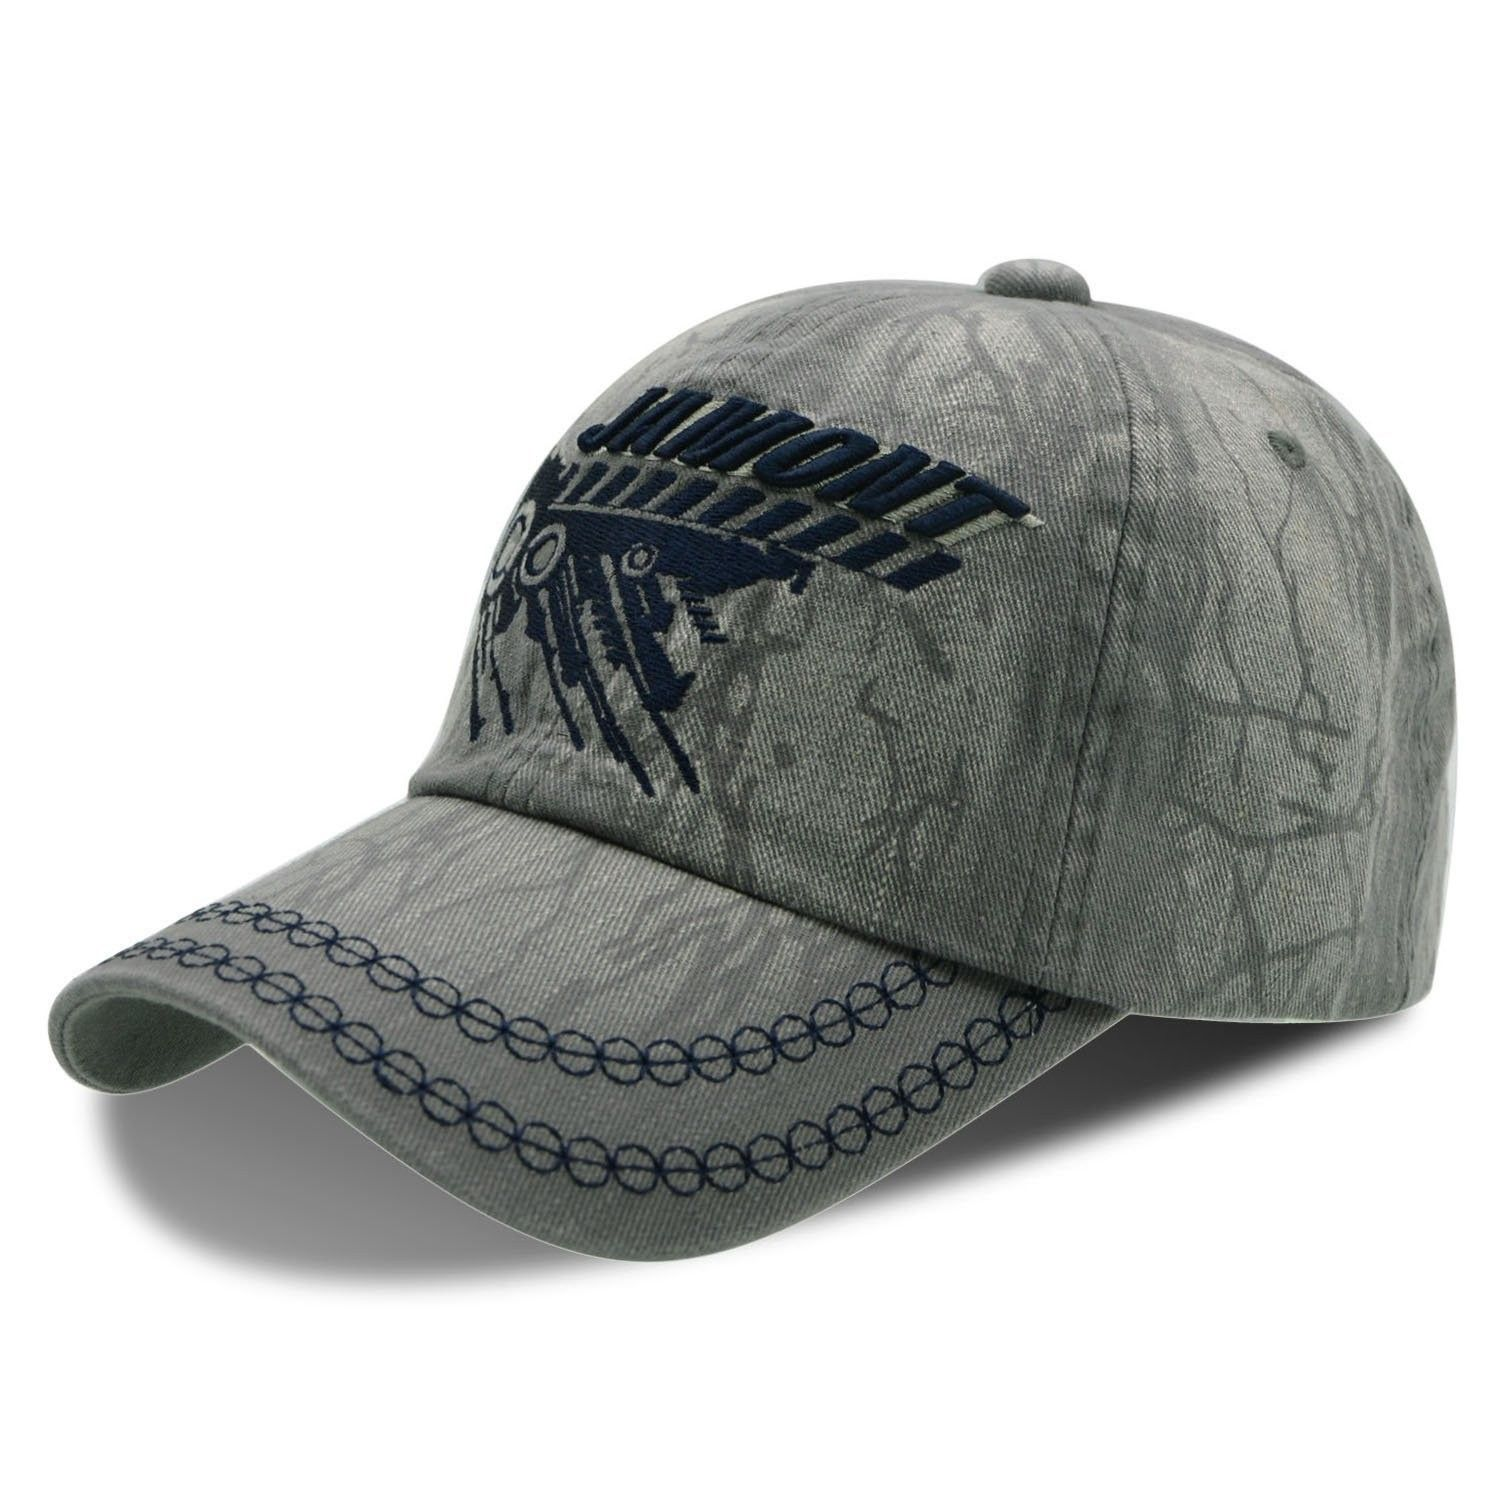 Comfortable Baseball Cap Stylish Dad Hat Texture Pattern With Embroidery  For Men   Women - Grey - C8185EAHMHY - Hats   Caps 775fed44502